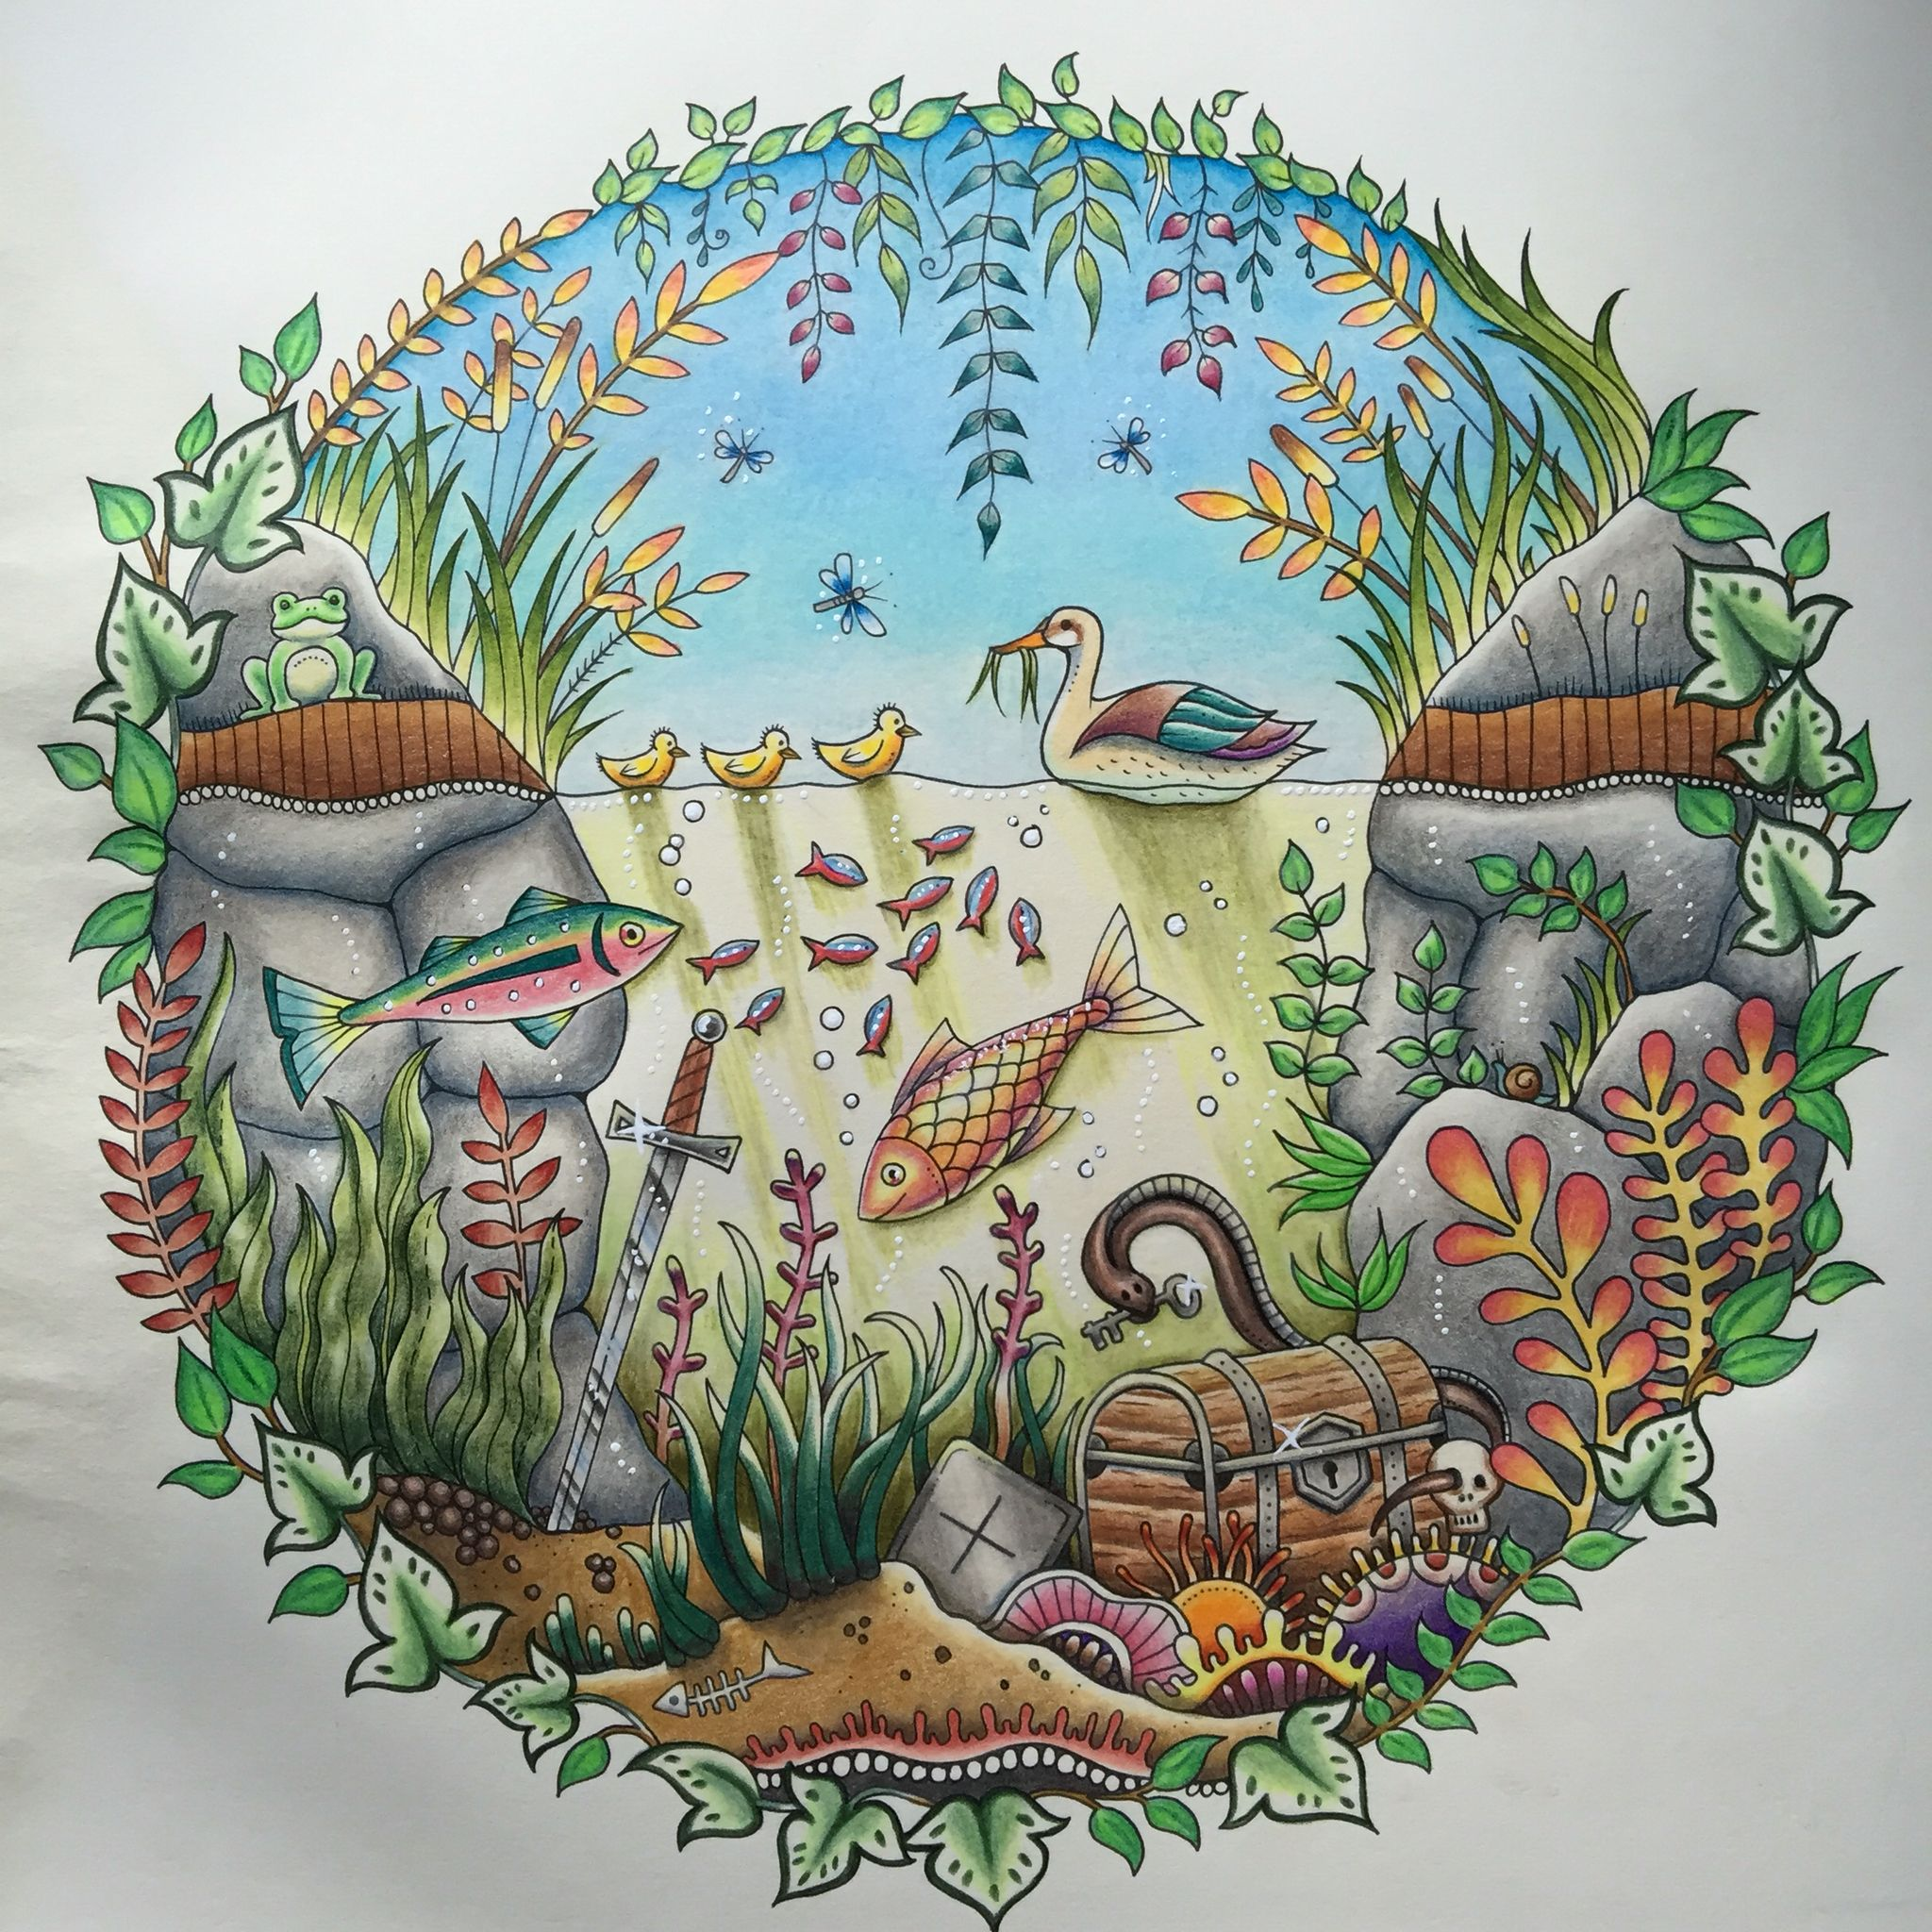 Enchanted Forest Duck Pond Completed Using Peta Hewitts Tutorial Polychromos And Derwent Artist Pencils